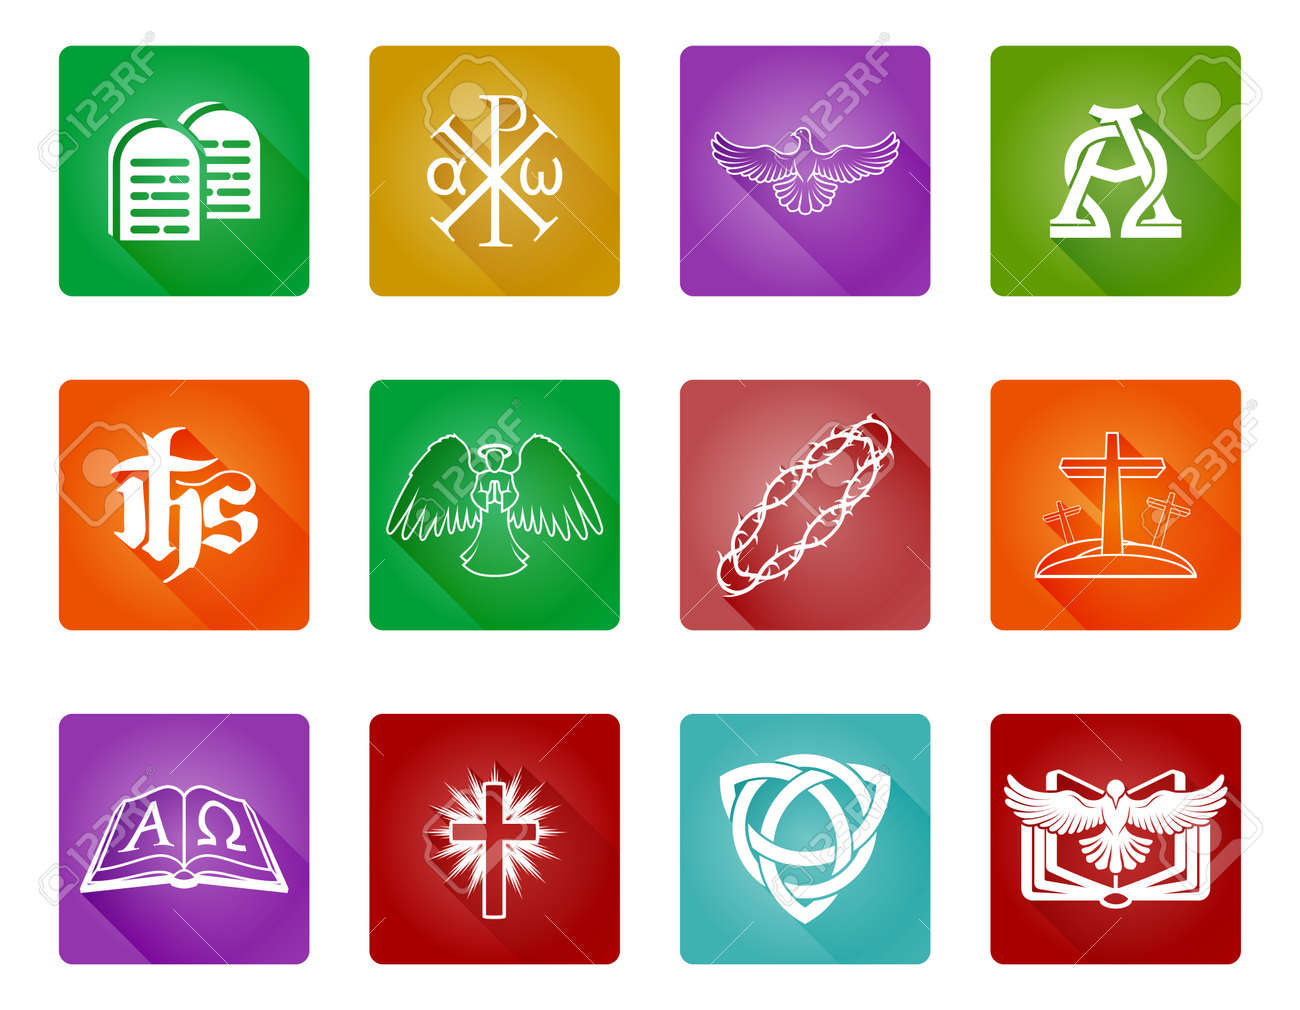 A Set Of Christian Religious Icons And Symbols With Alpha Omega